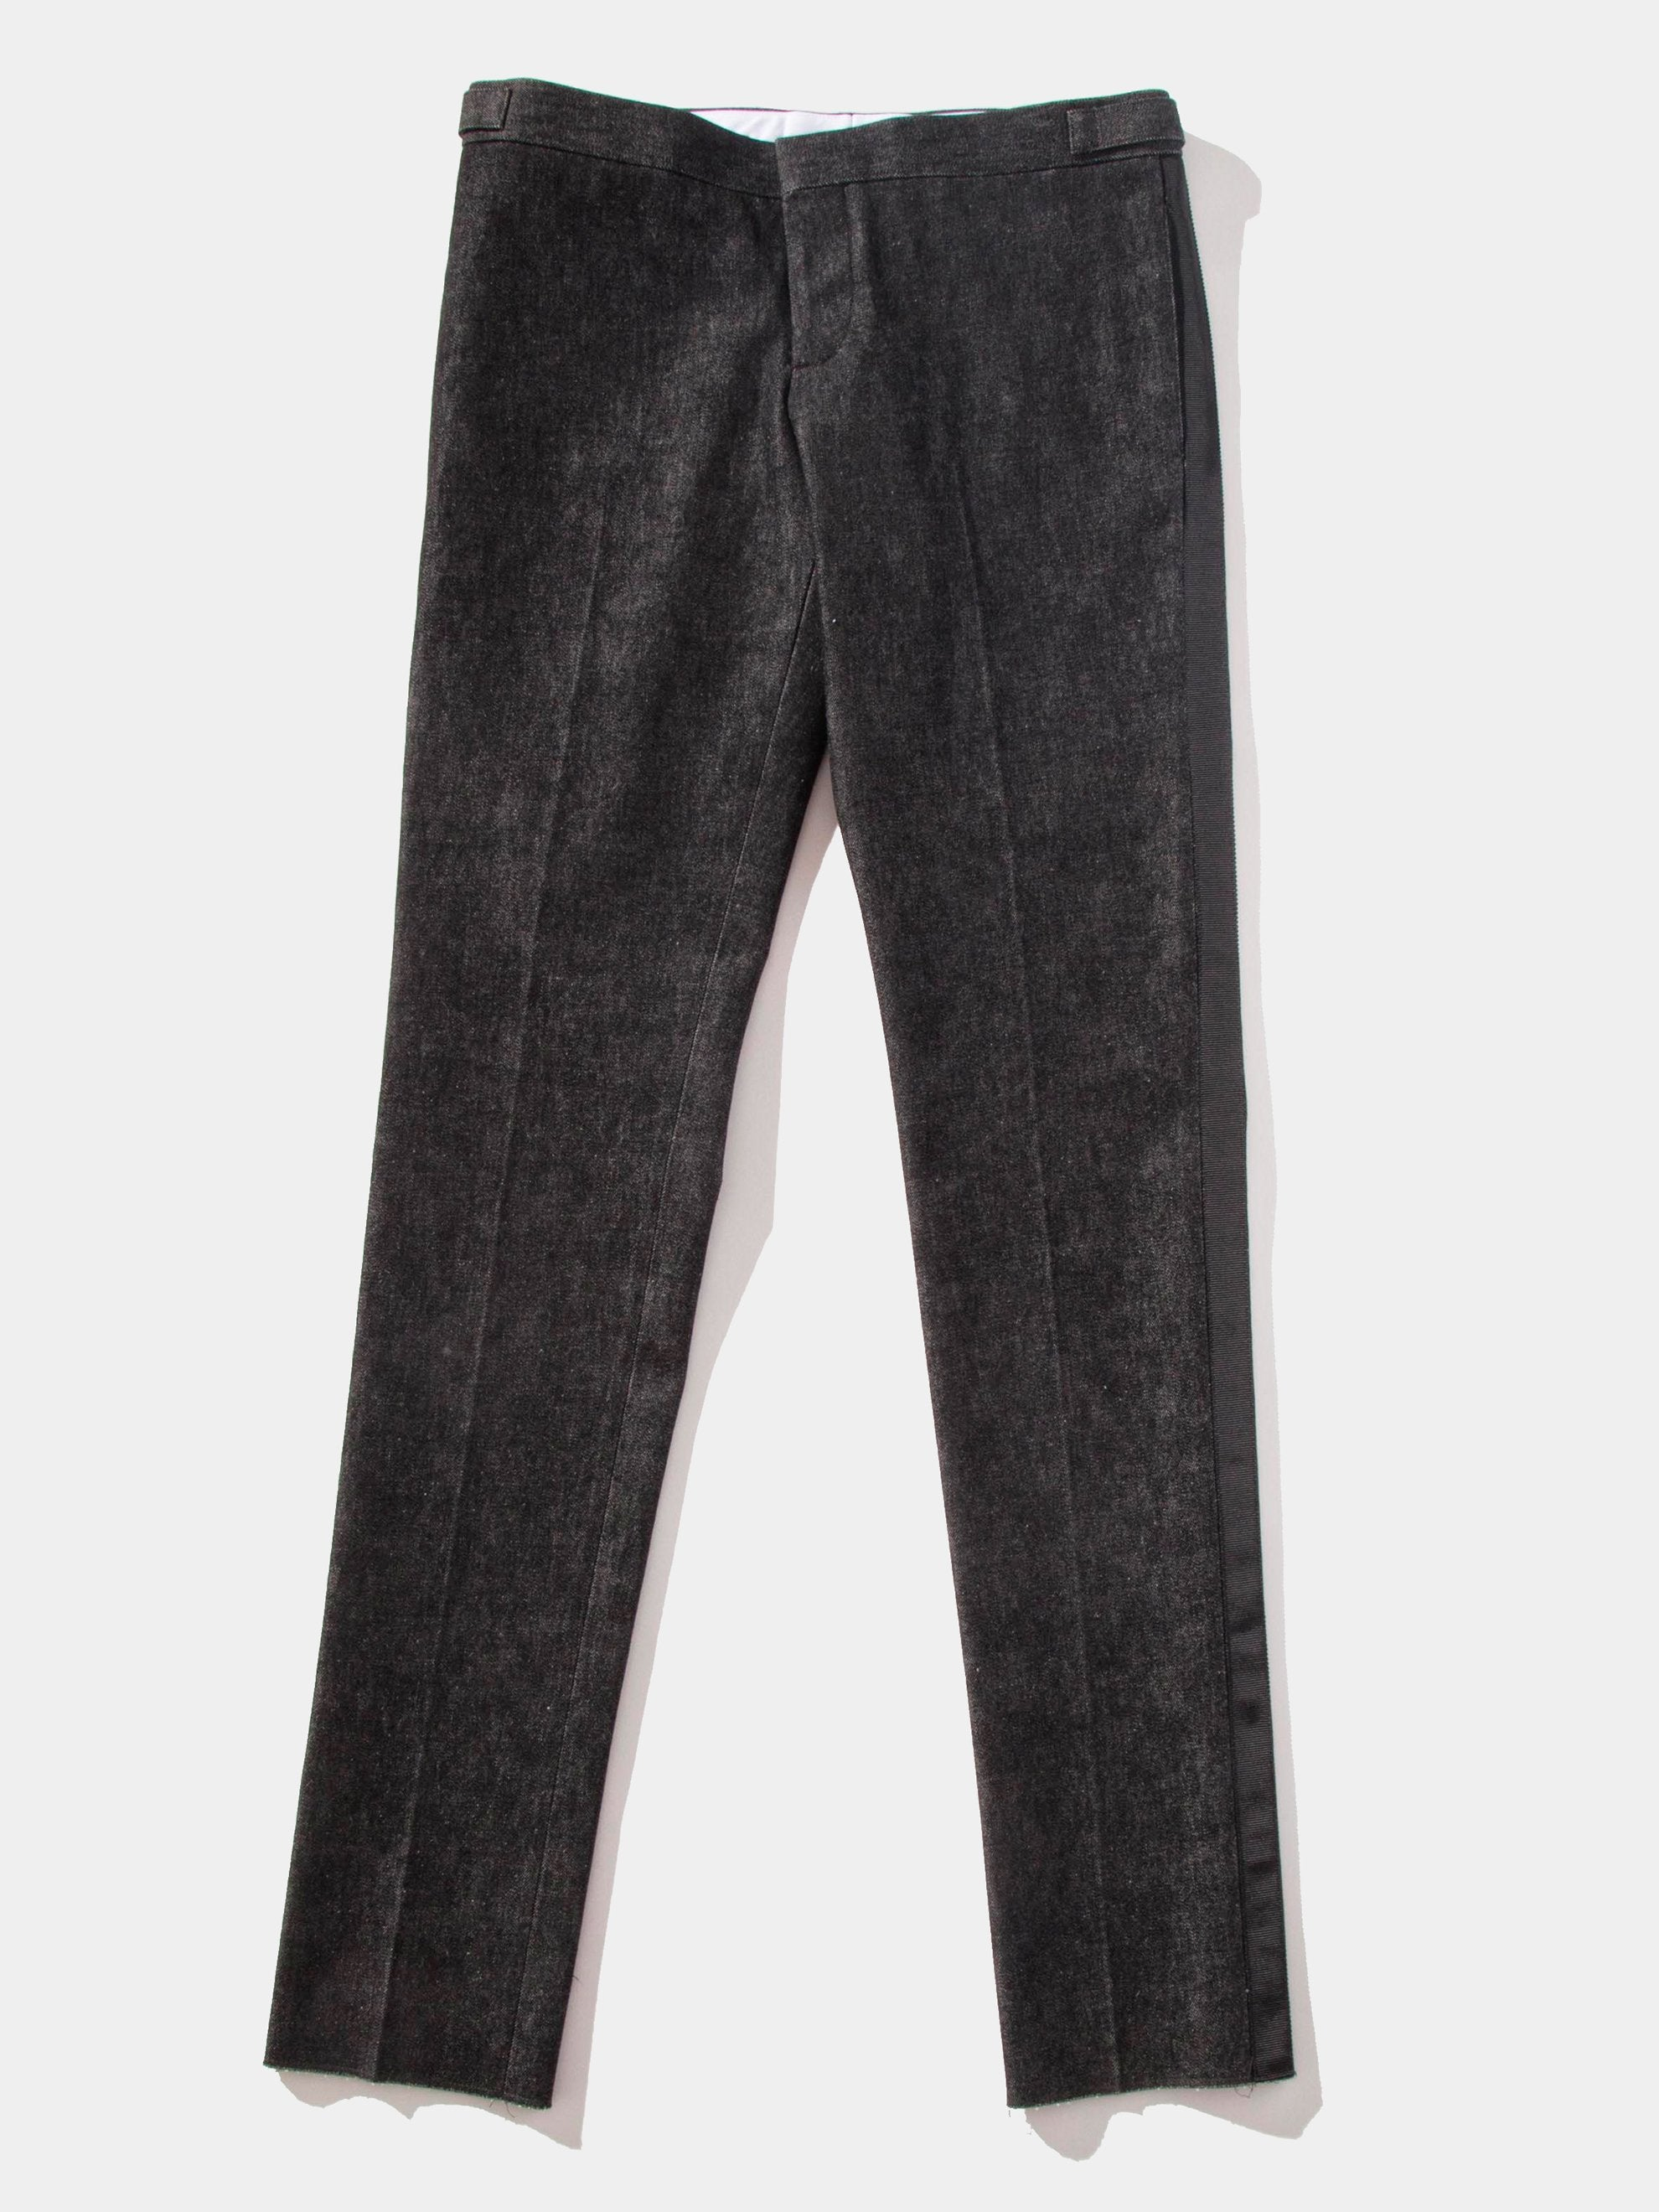 Unconstructed Low Rise Skinny Trouser (GG Tipping/Washed Denim)